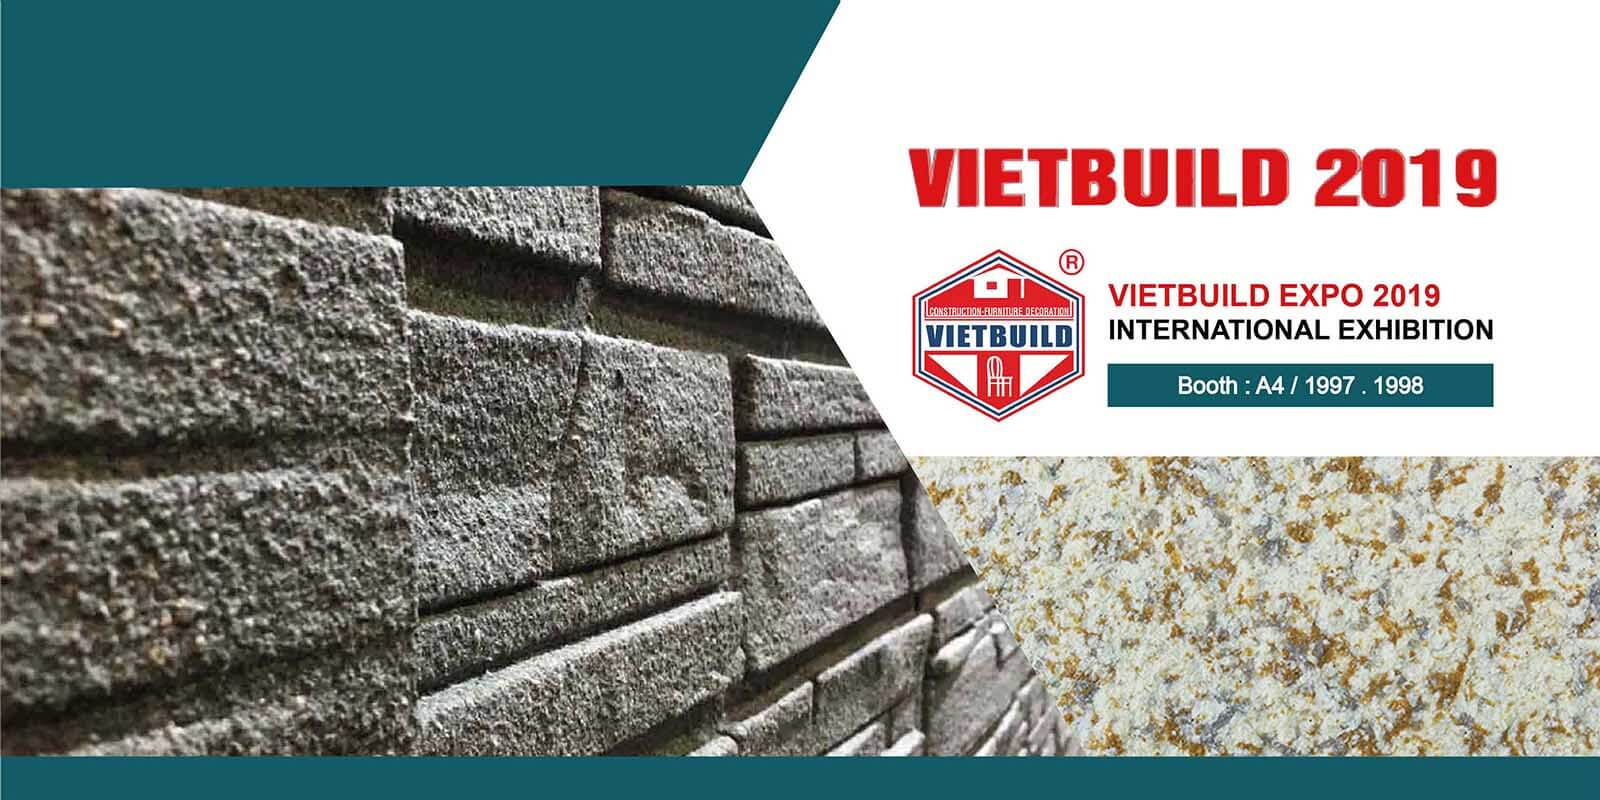 VIETBUILD June 2019 - ADD STONE